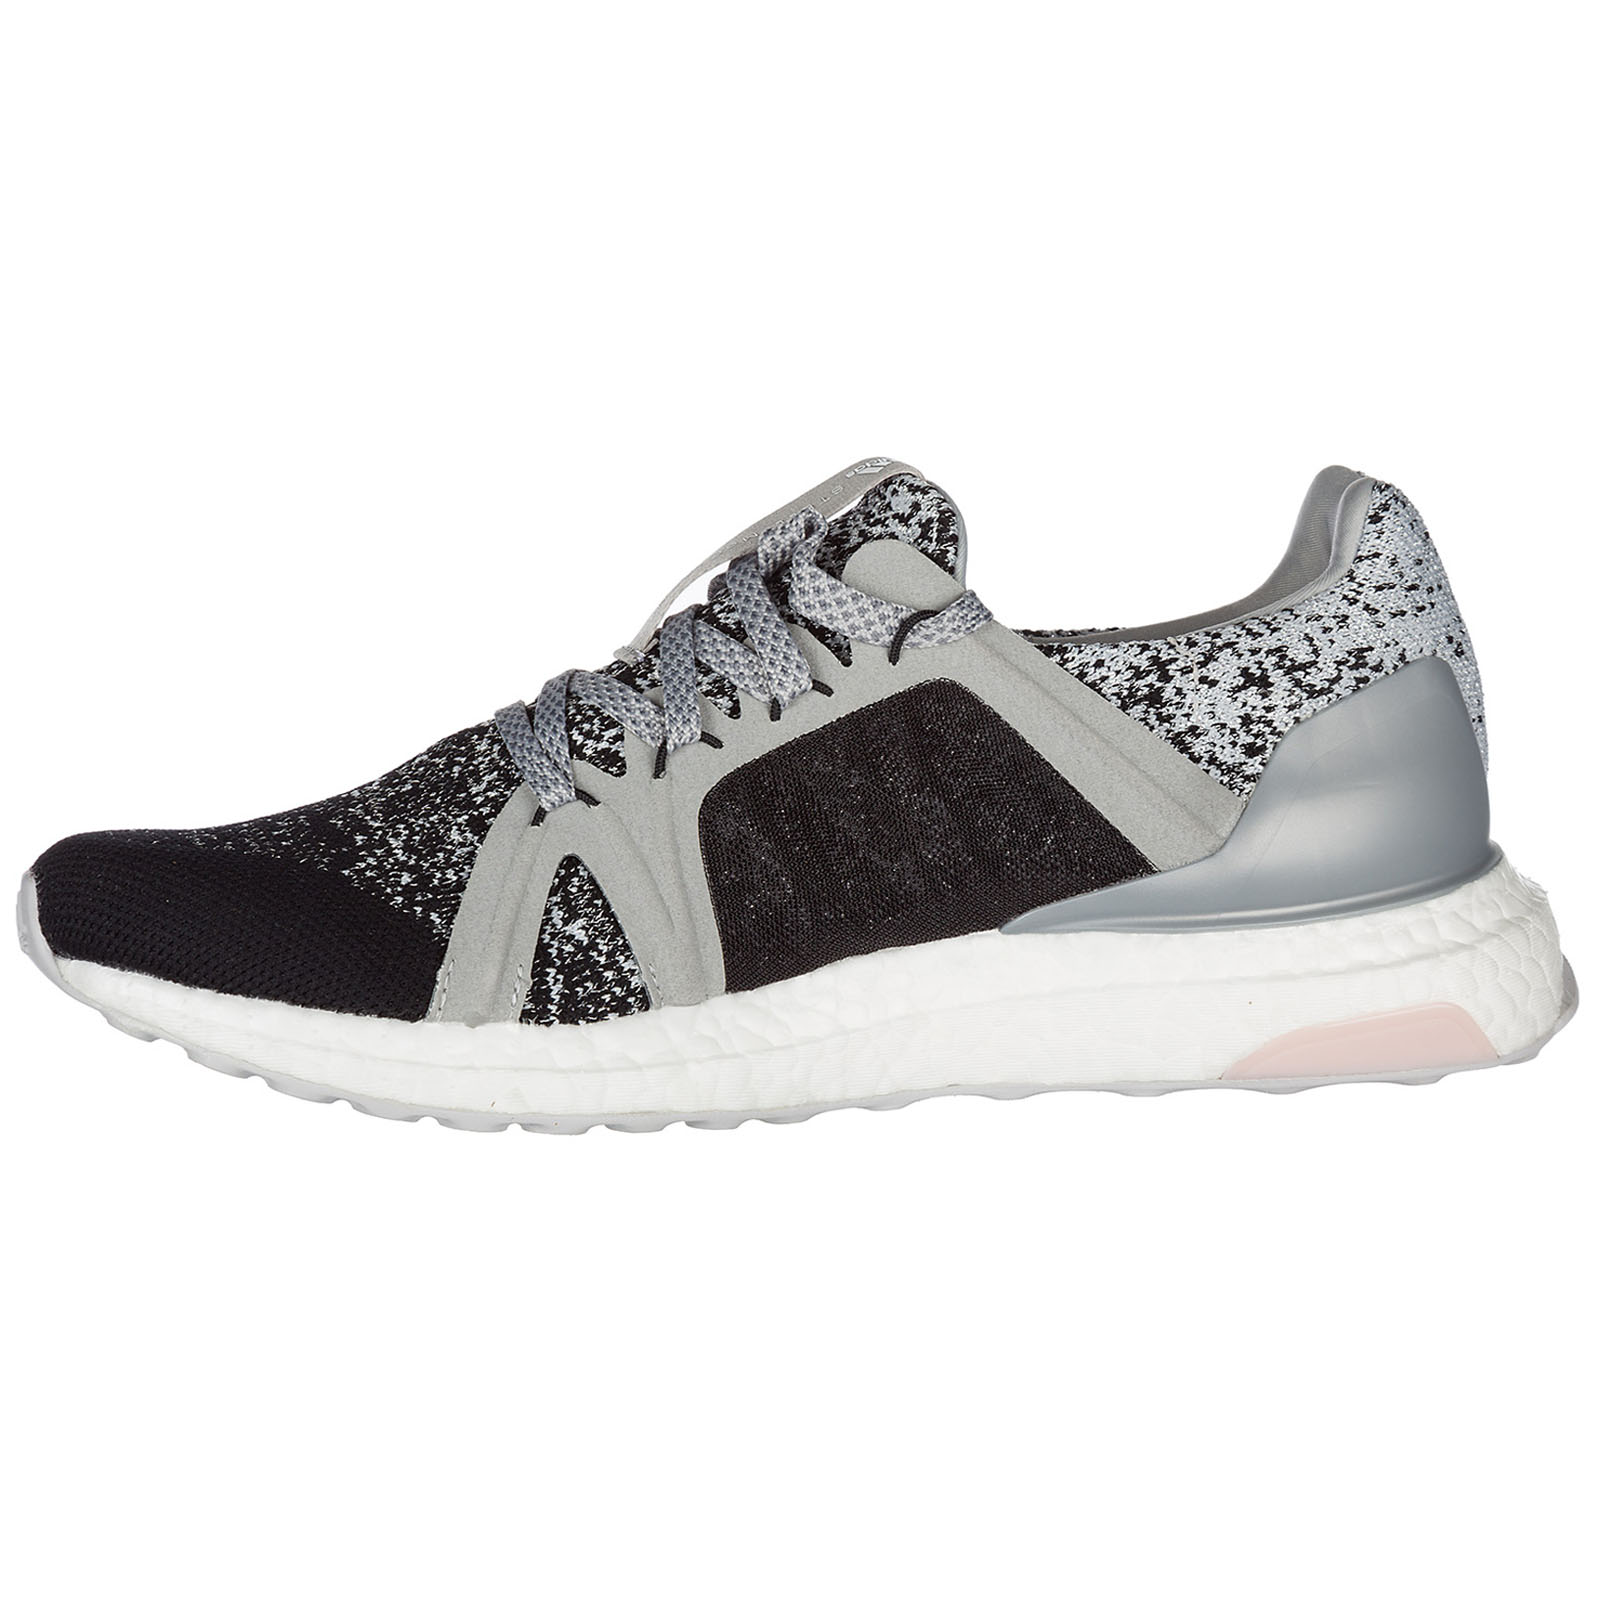 293ac3611fb34 ... Women s shoes trainers sneakers ultra boost ...